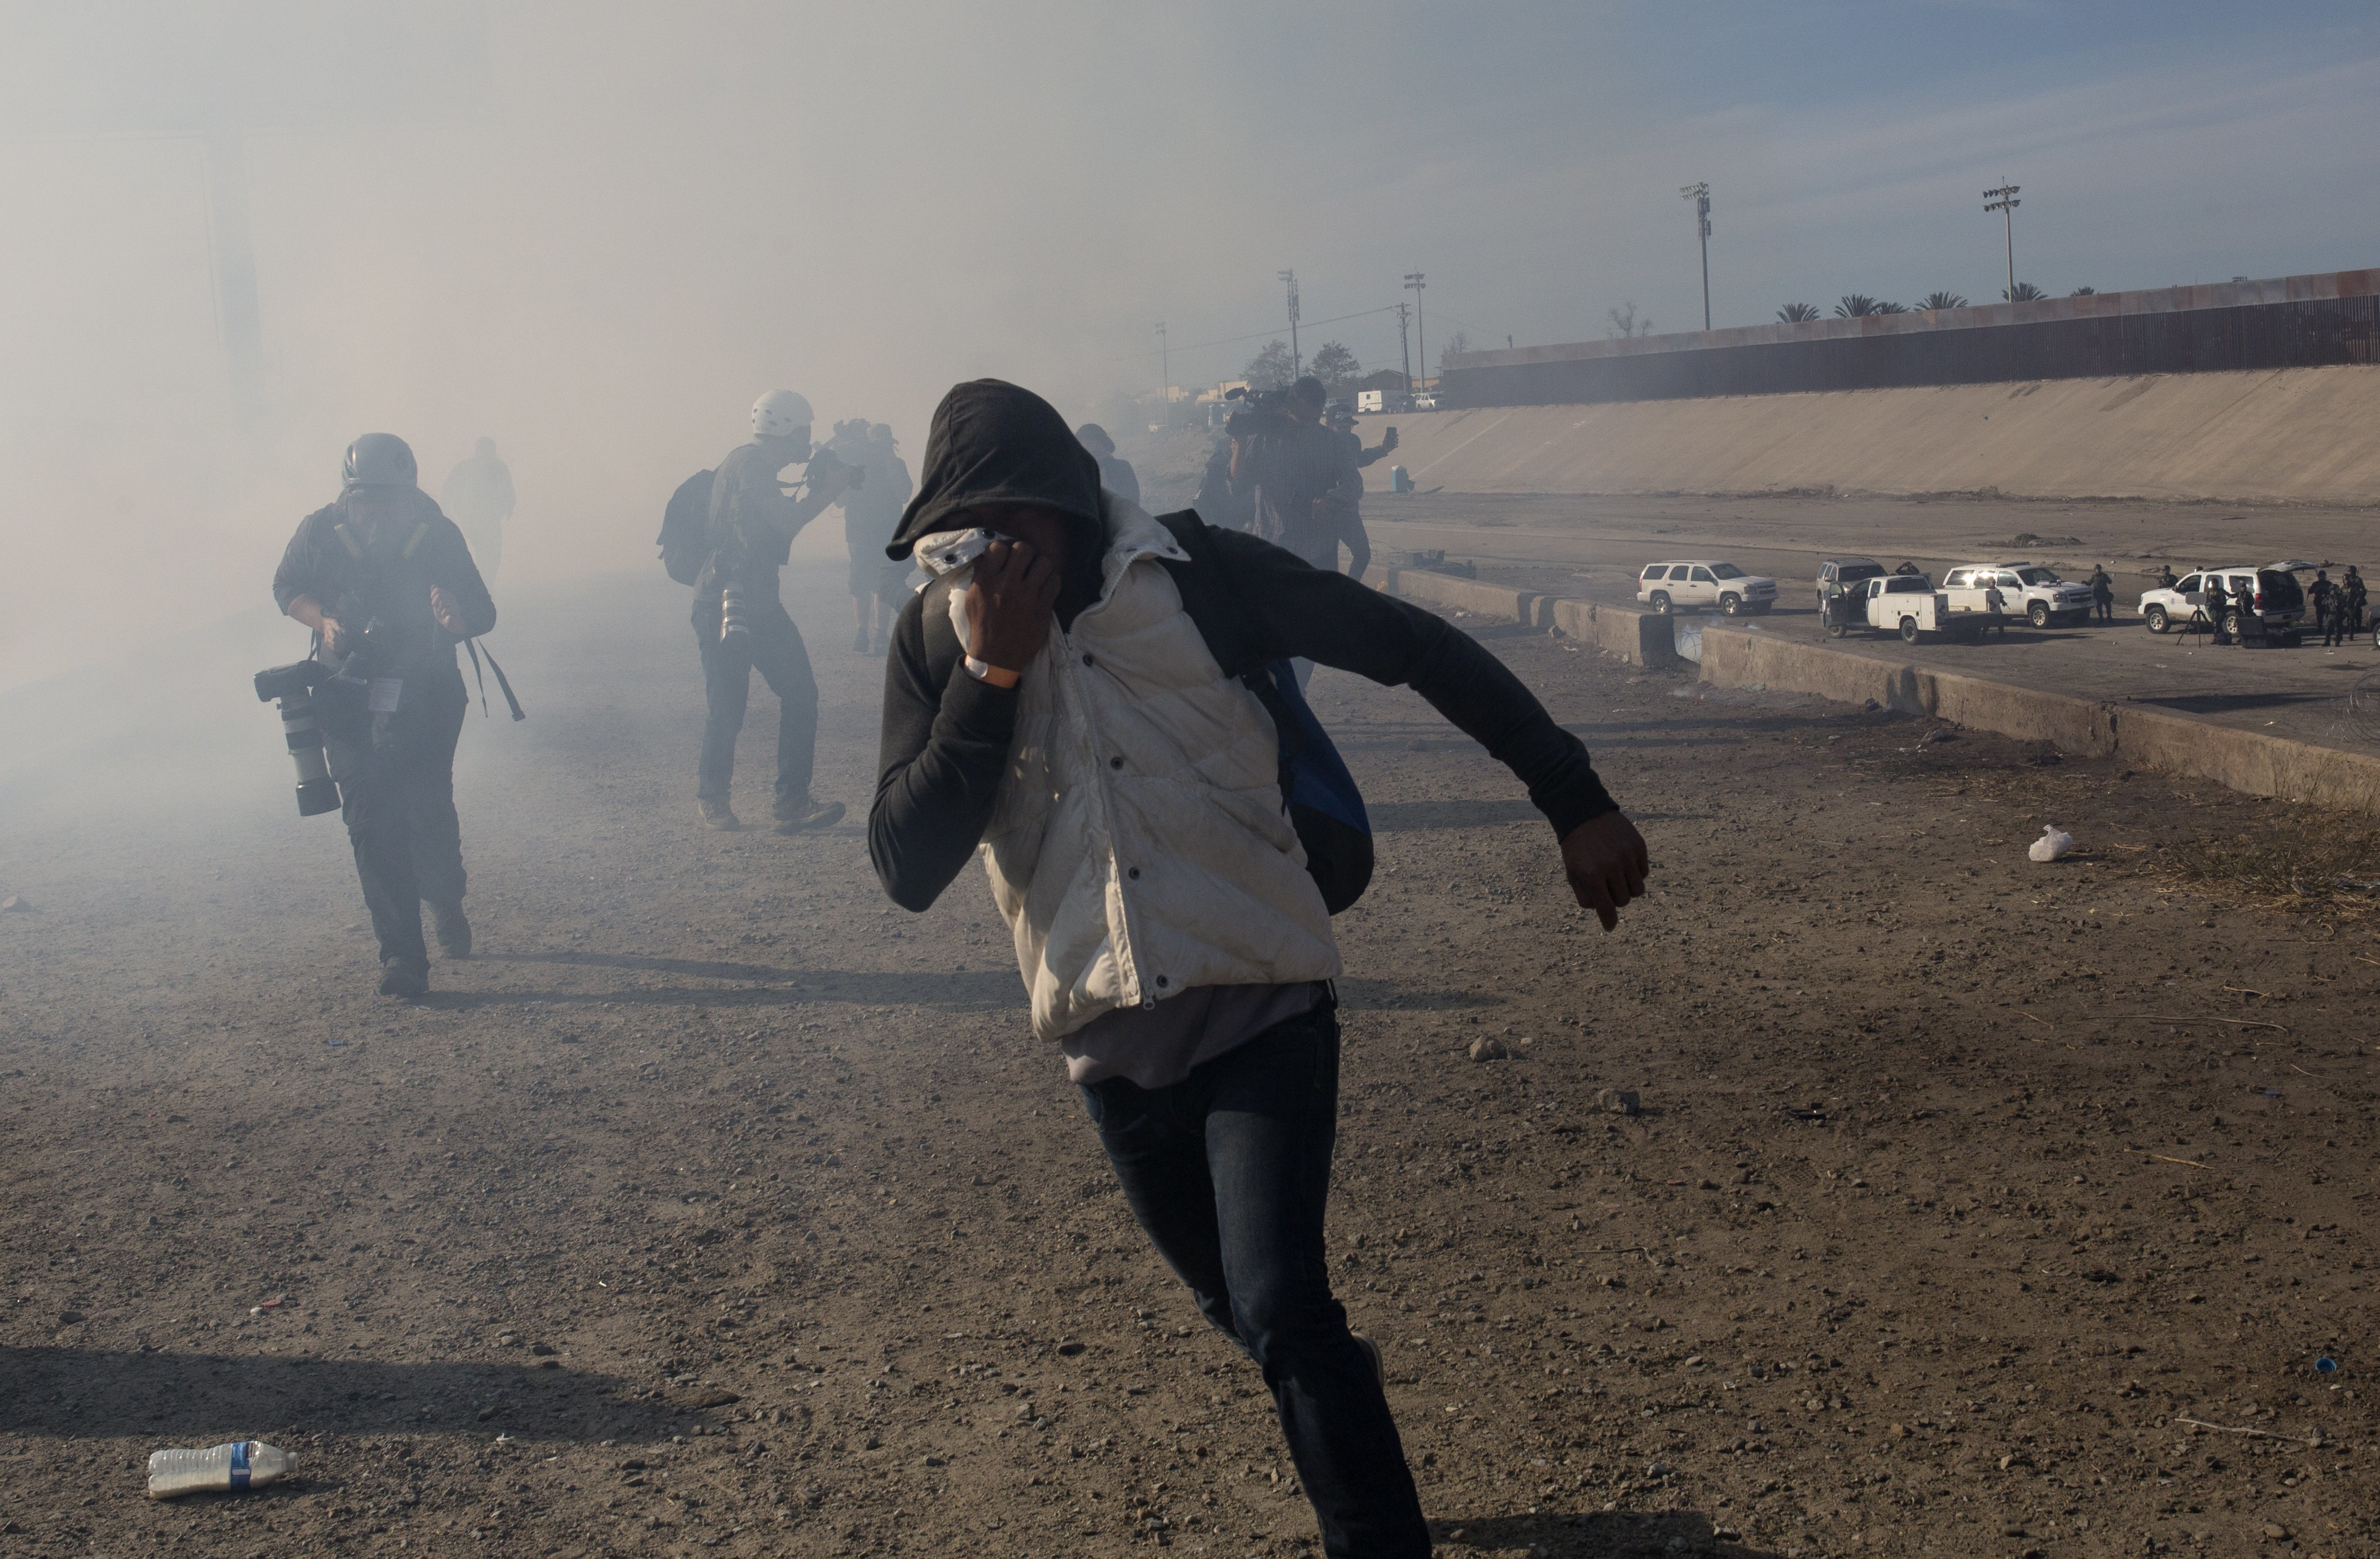 Obama administration used tear gas at border once a month